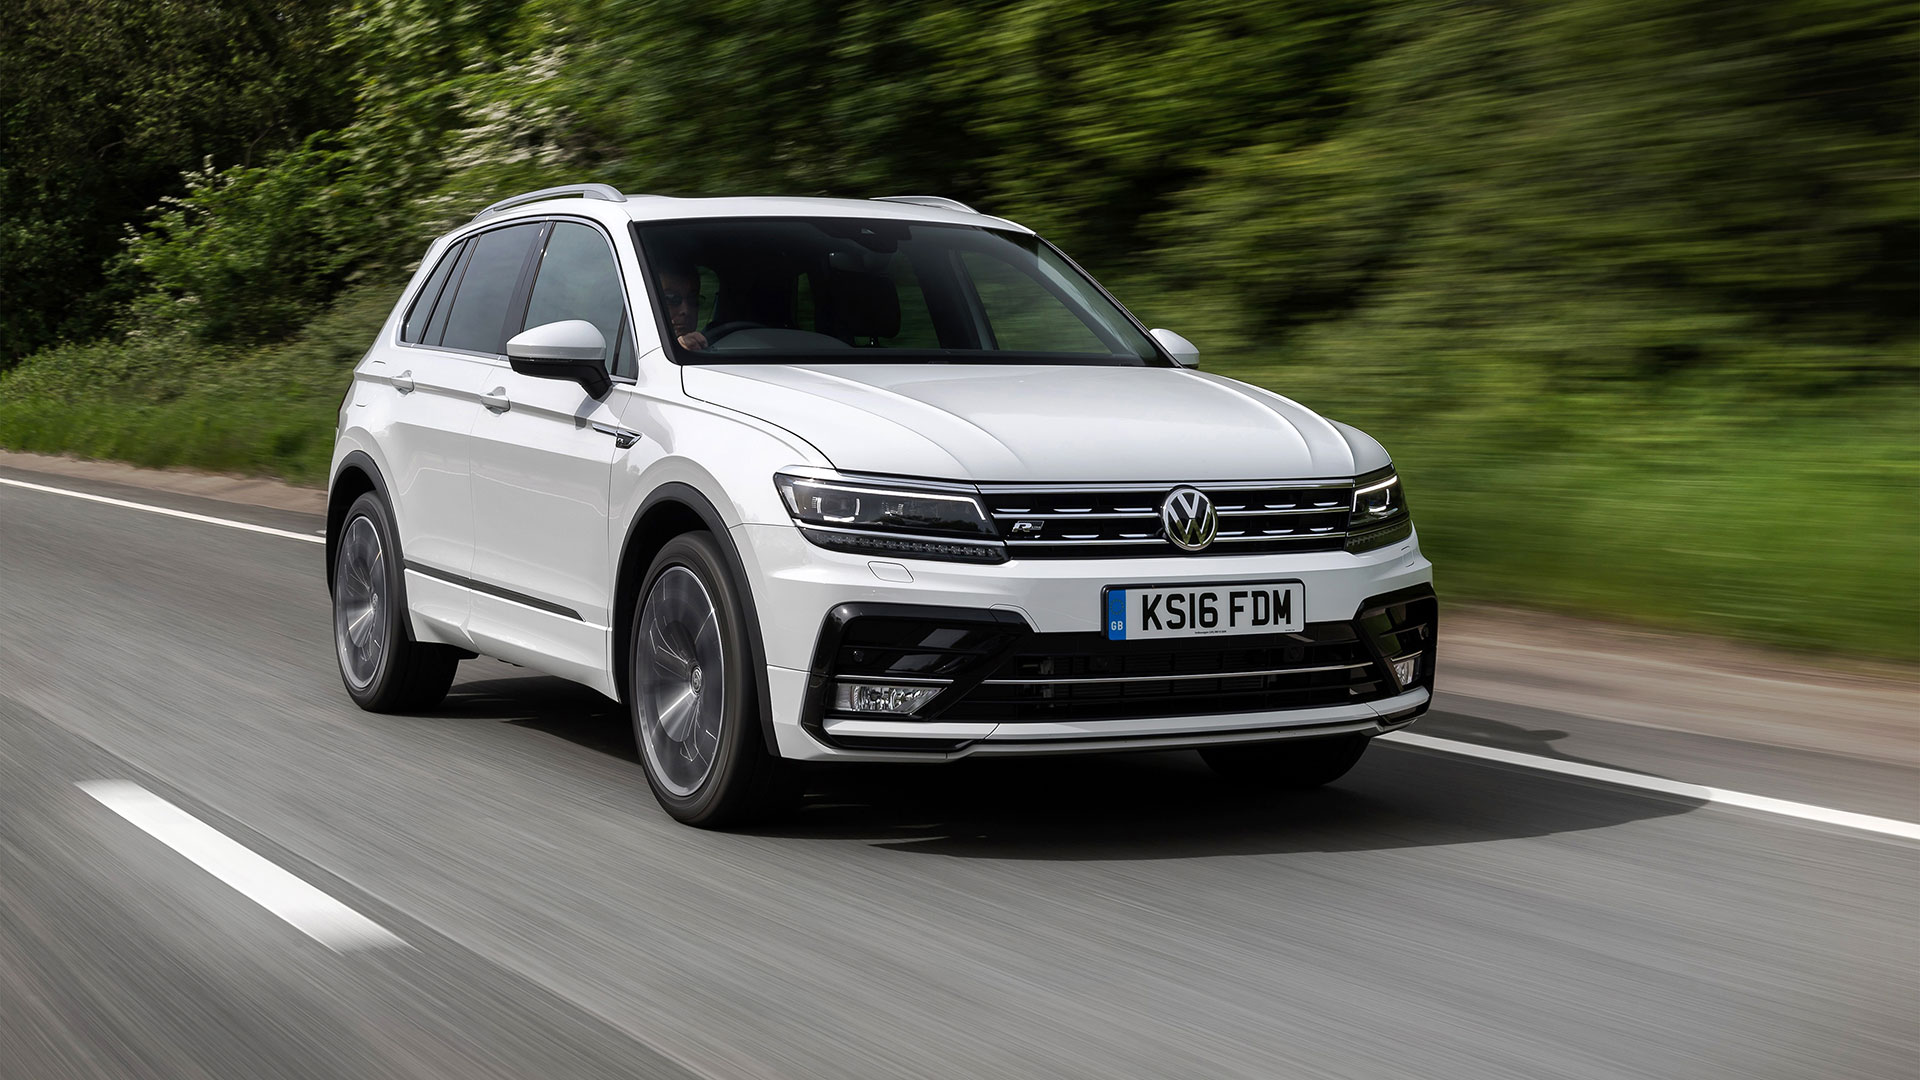 Volkswagen Tiguan Suv 2016 Review Auto Trader Uk